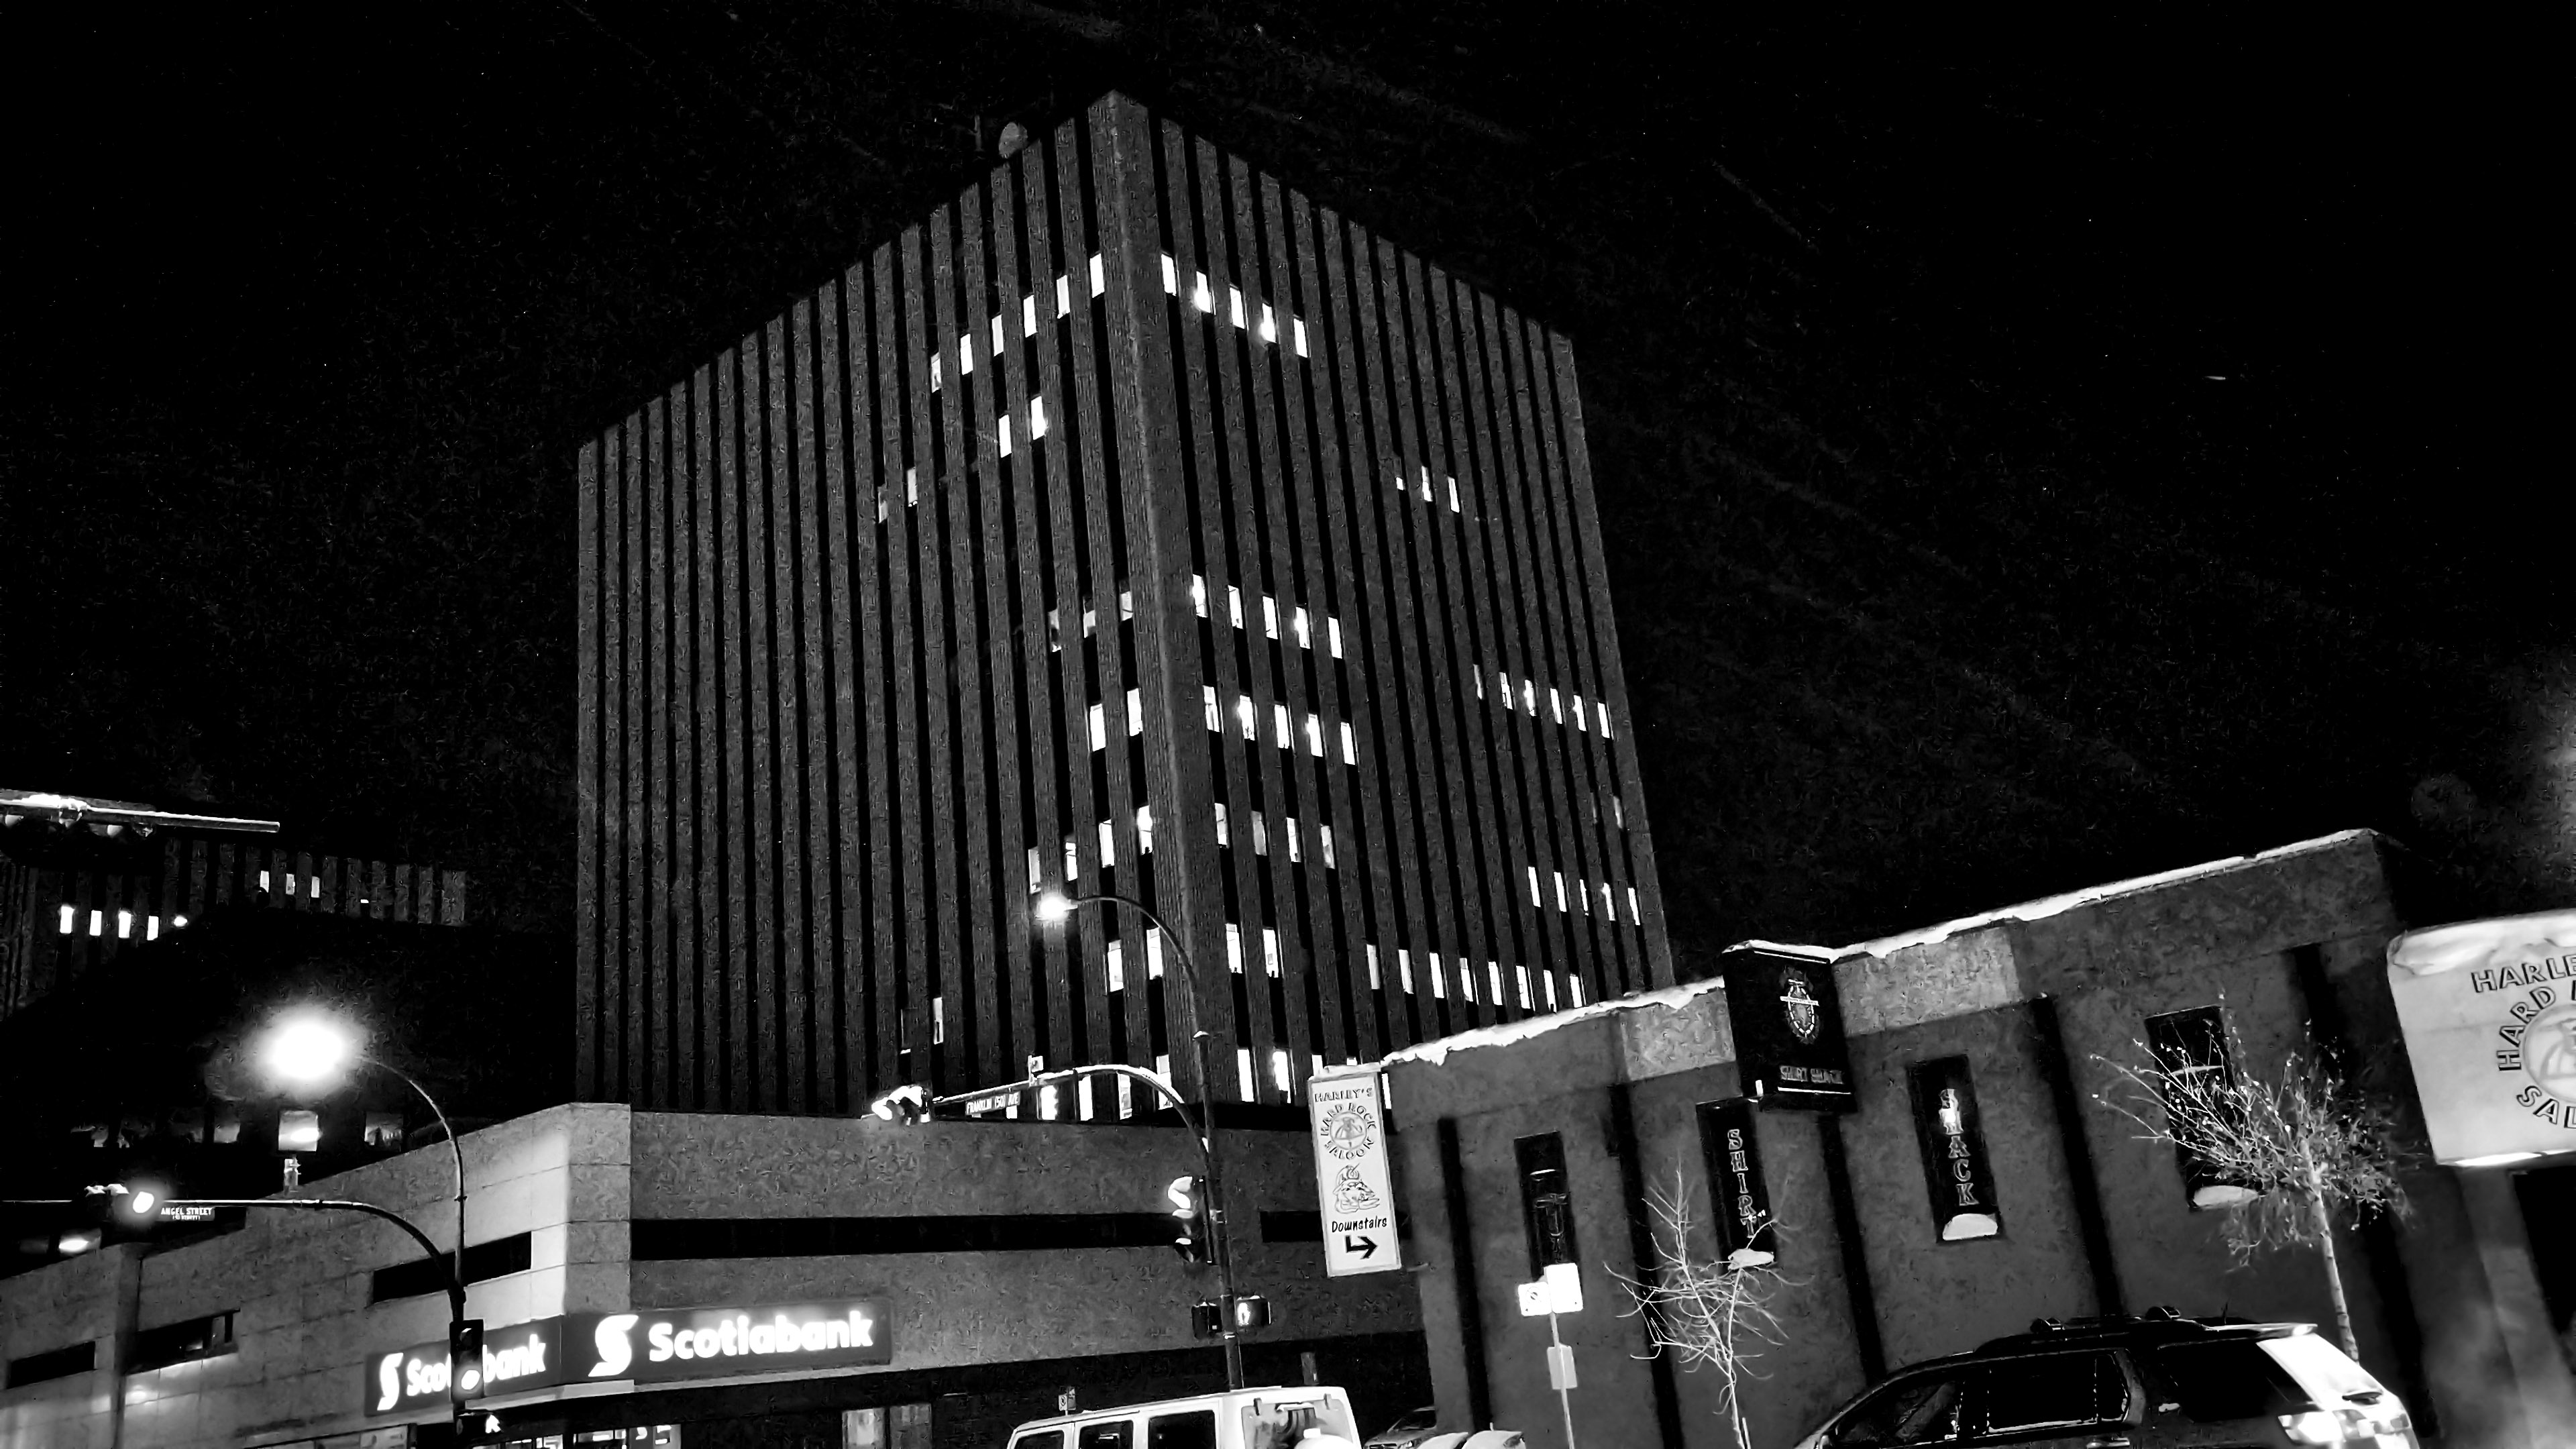 Lights remain on at Yellowknife's Scotia Centre, home to several territorial government departments, on the evening of January 31, 2018